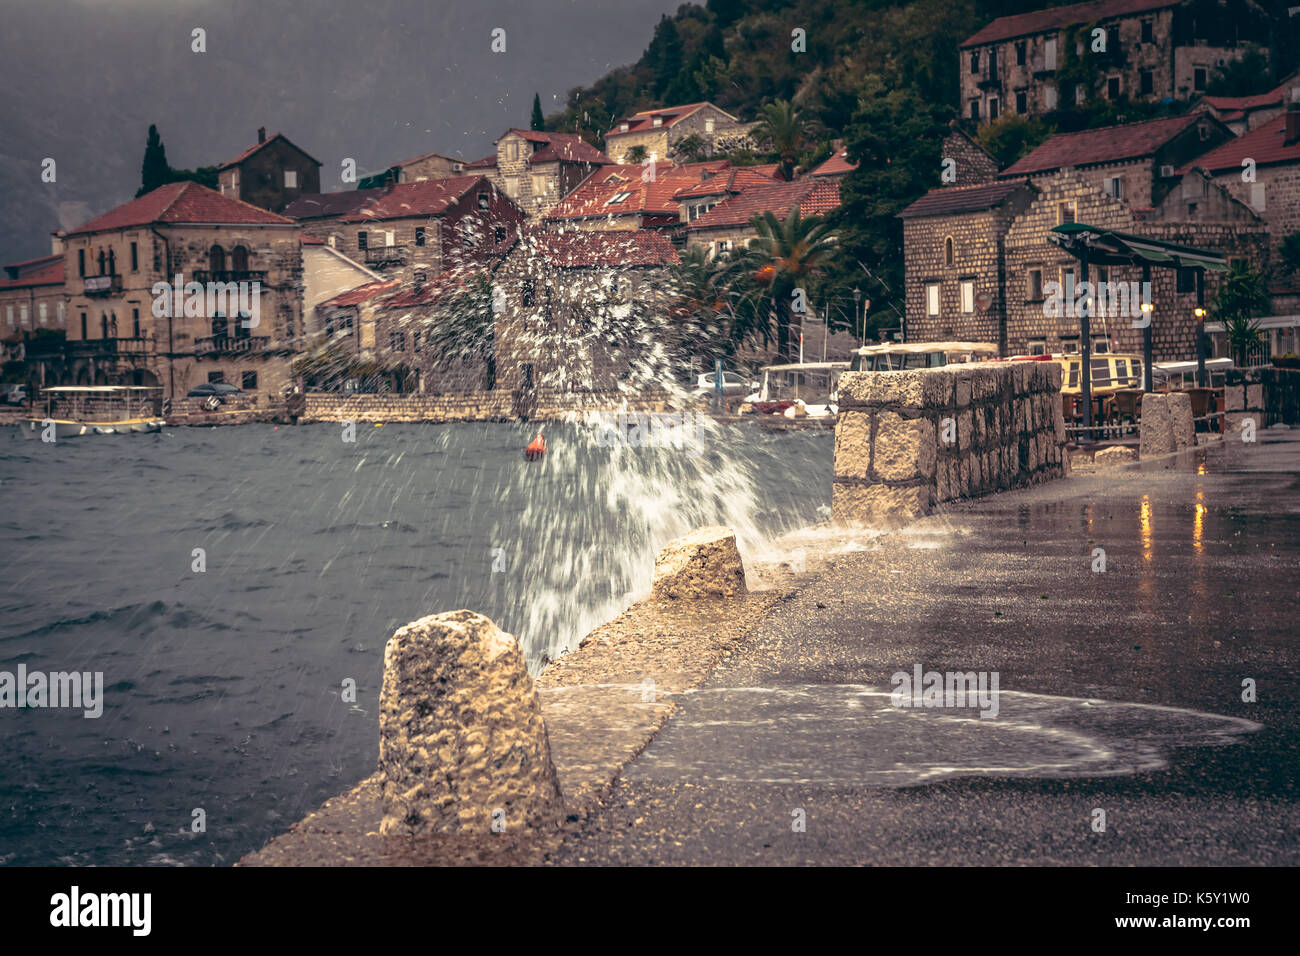 Promenade in rainy overcast day with puddles and splashes in old European city Perast on blurred city background - Stock Image